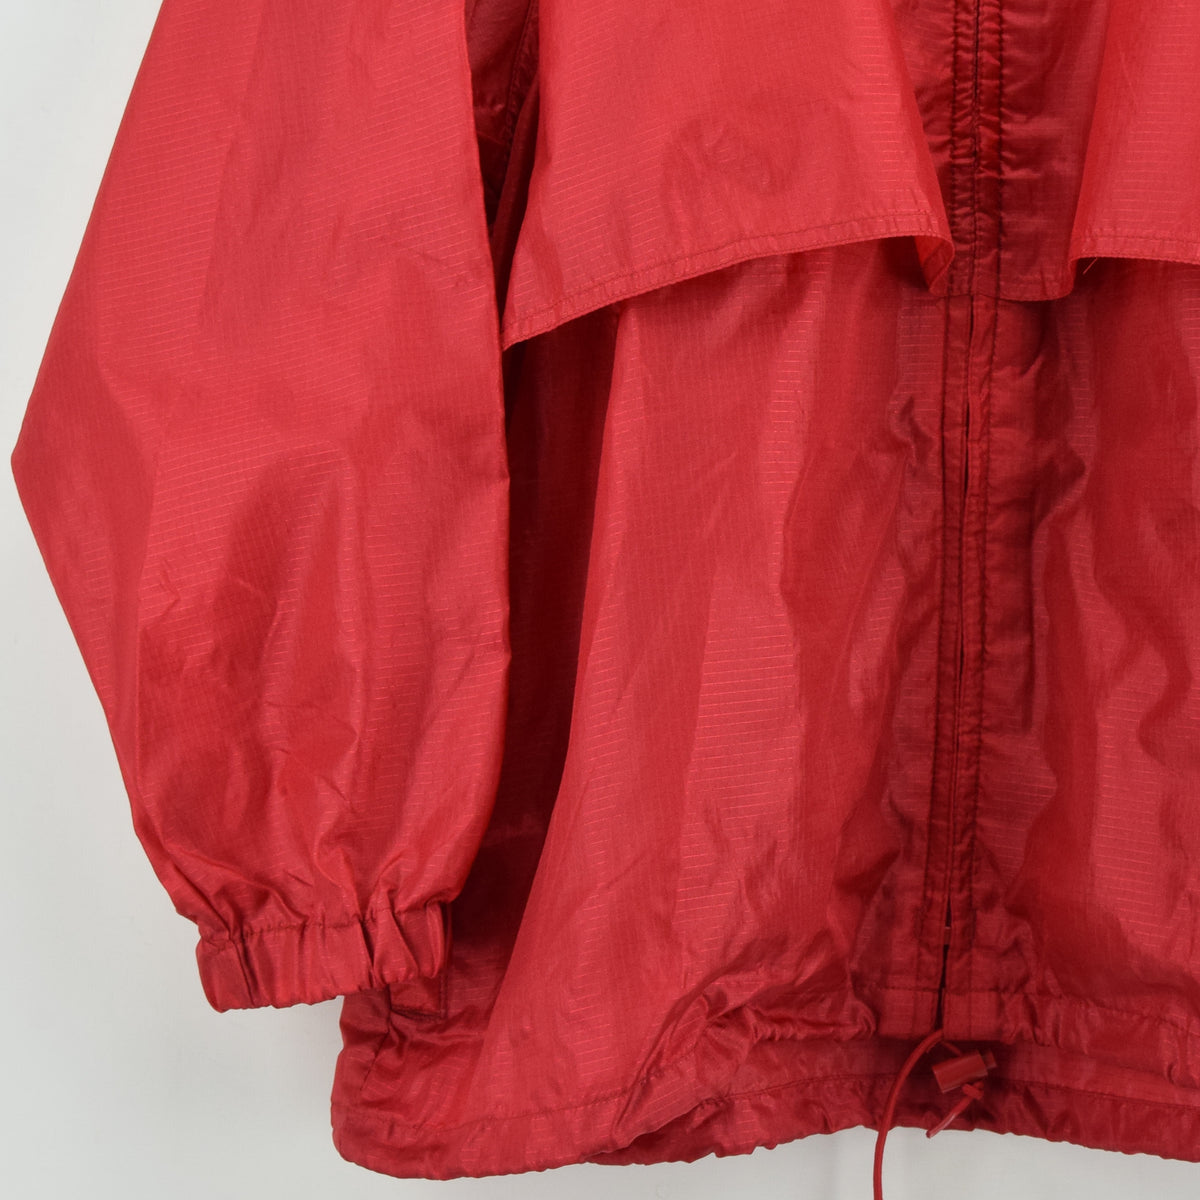 Eddie Bauer Red Hooded Nylon Ripstop Packaway Cagoule Jacket L front hem